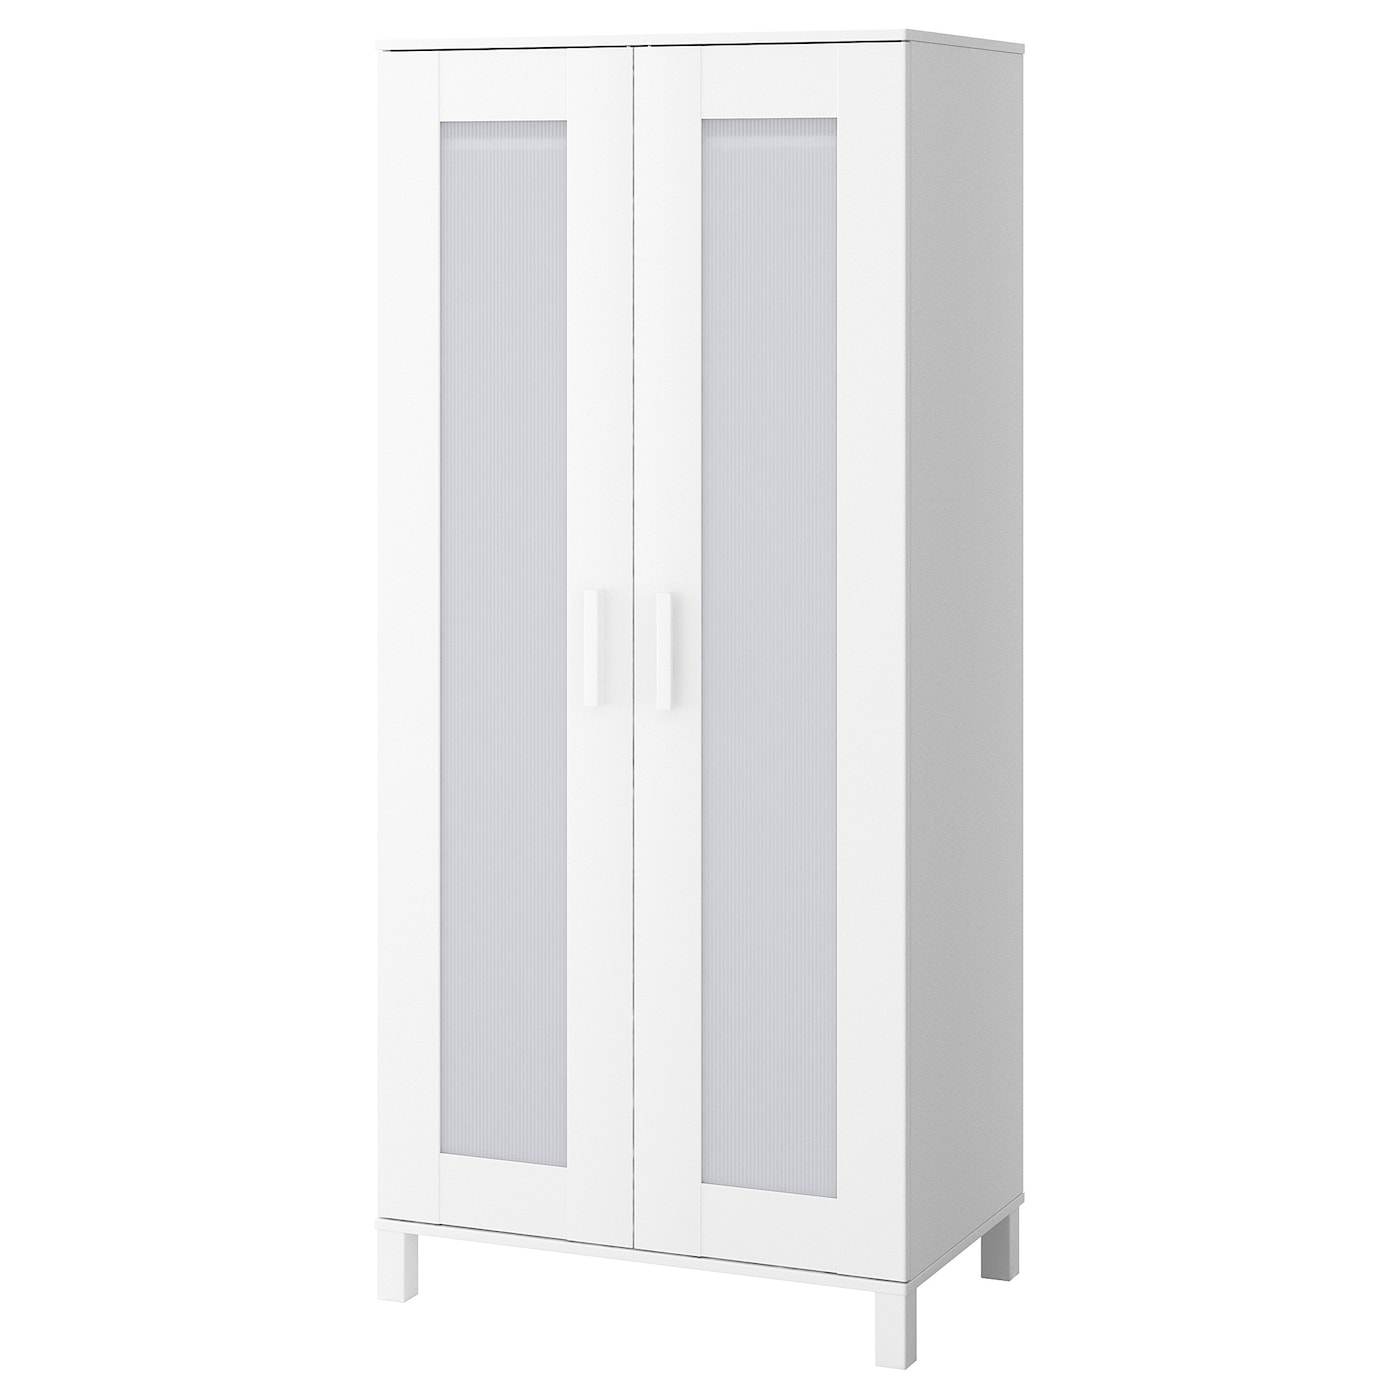 ikea aneboda wardrobe adjustable hinges ensure that the doors hang straight - White Wardrobe